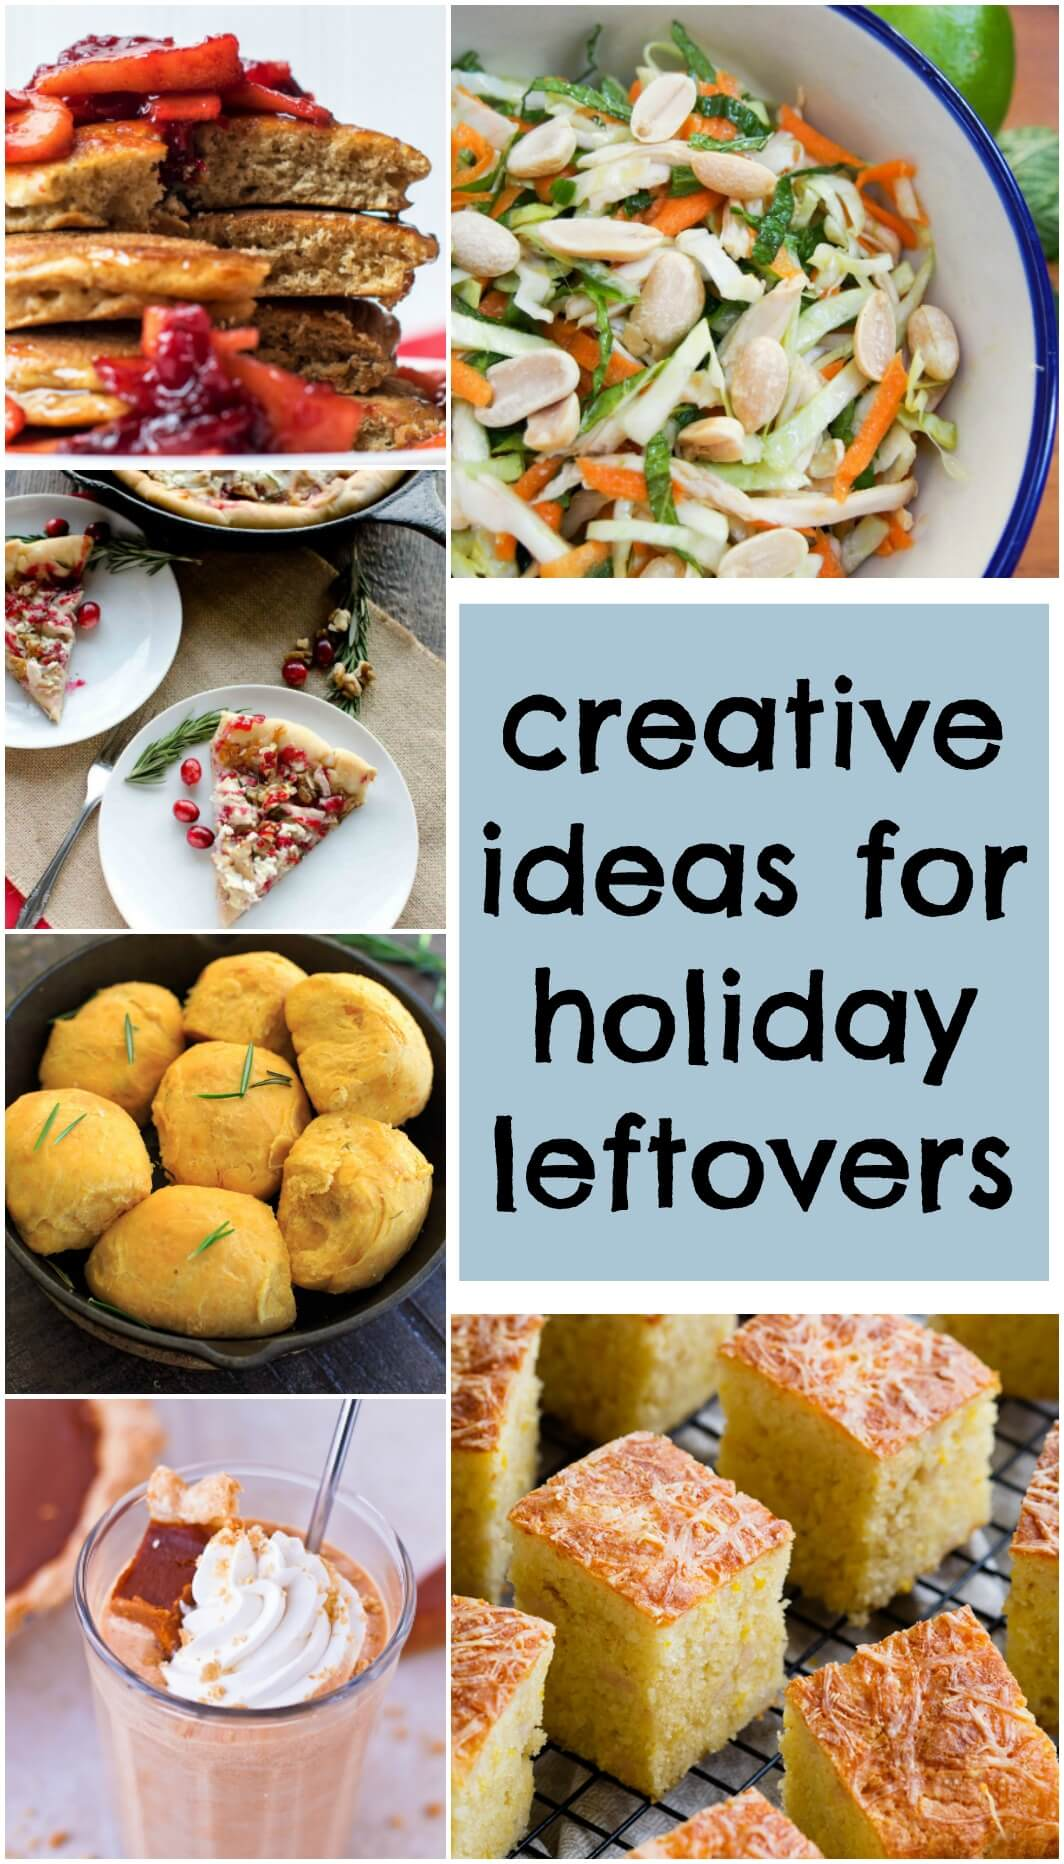 Creative ideas for holiday leftovers - fed up with turkey sandwiches? Not sure what to do with that cranberry sauce? Put your Thanksgiving leftovers / Christmas leftovers to good use with one of these delicious and creative recipes. Everything from breads to salads to pancakes using turkey, sides and even dessert! #leftovers #thanksgiving #repurposingleftovers